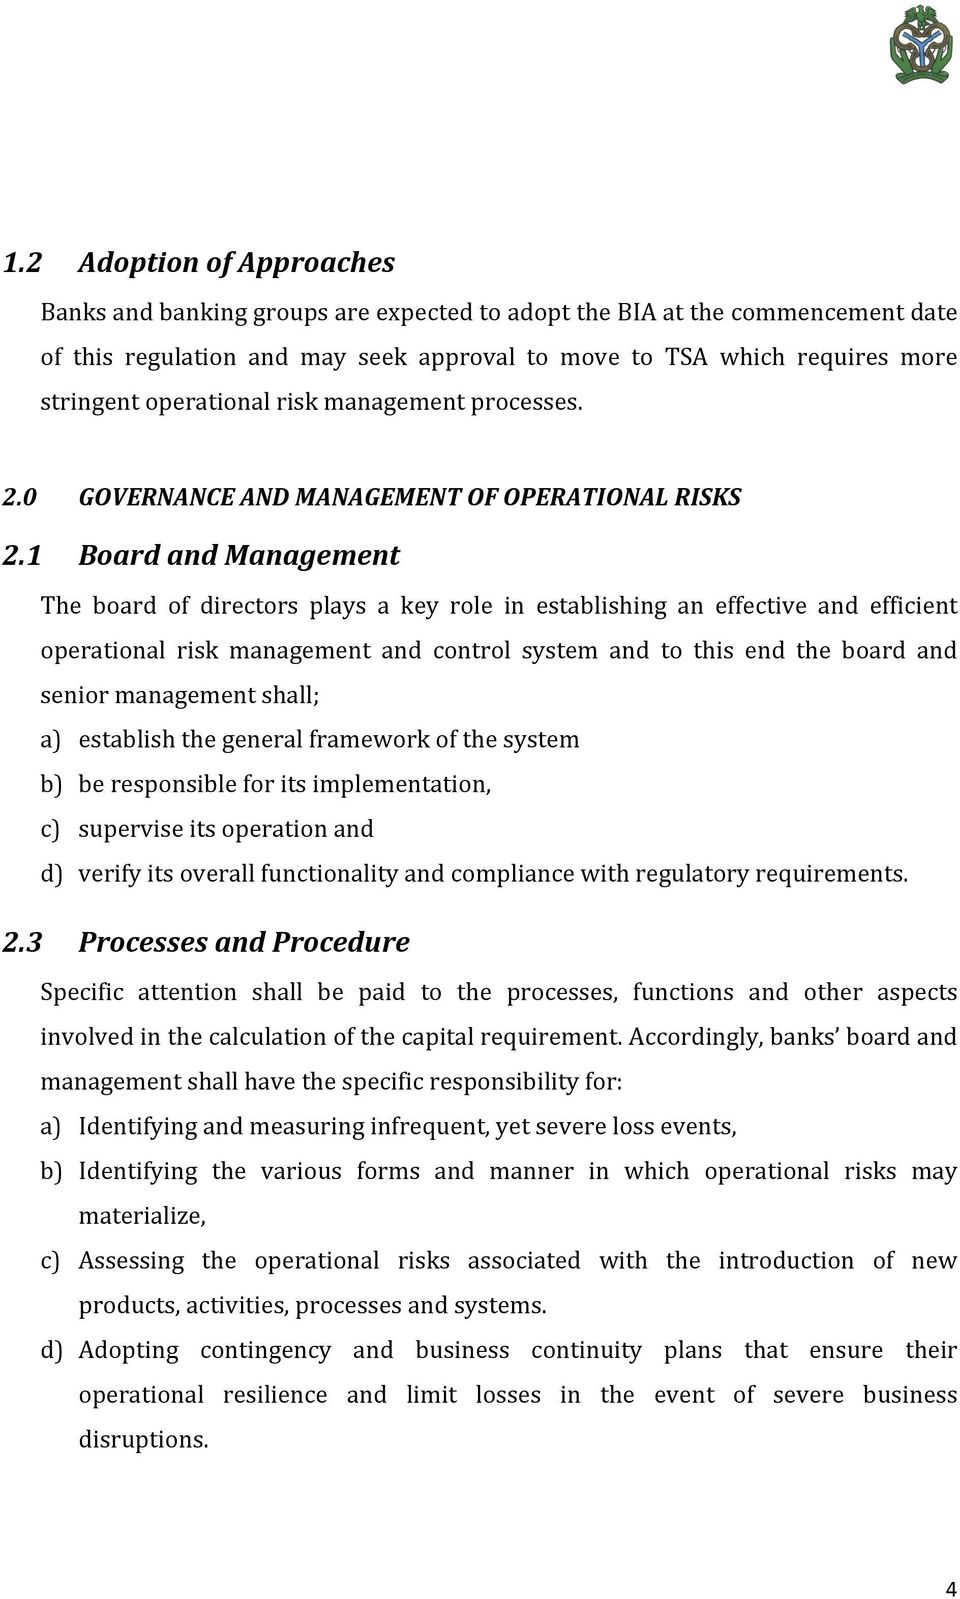 1 Board and Management The board of directors plays a key role in establishing an effective and efficient operational risk management and control system and to this end the board and senior